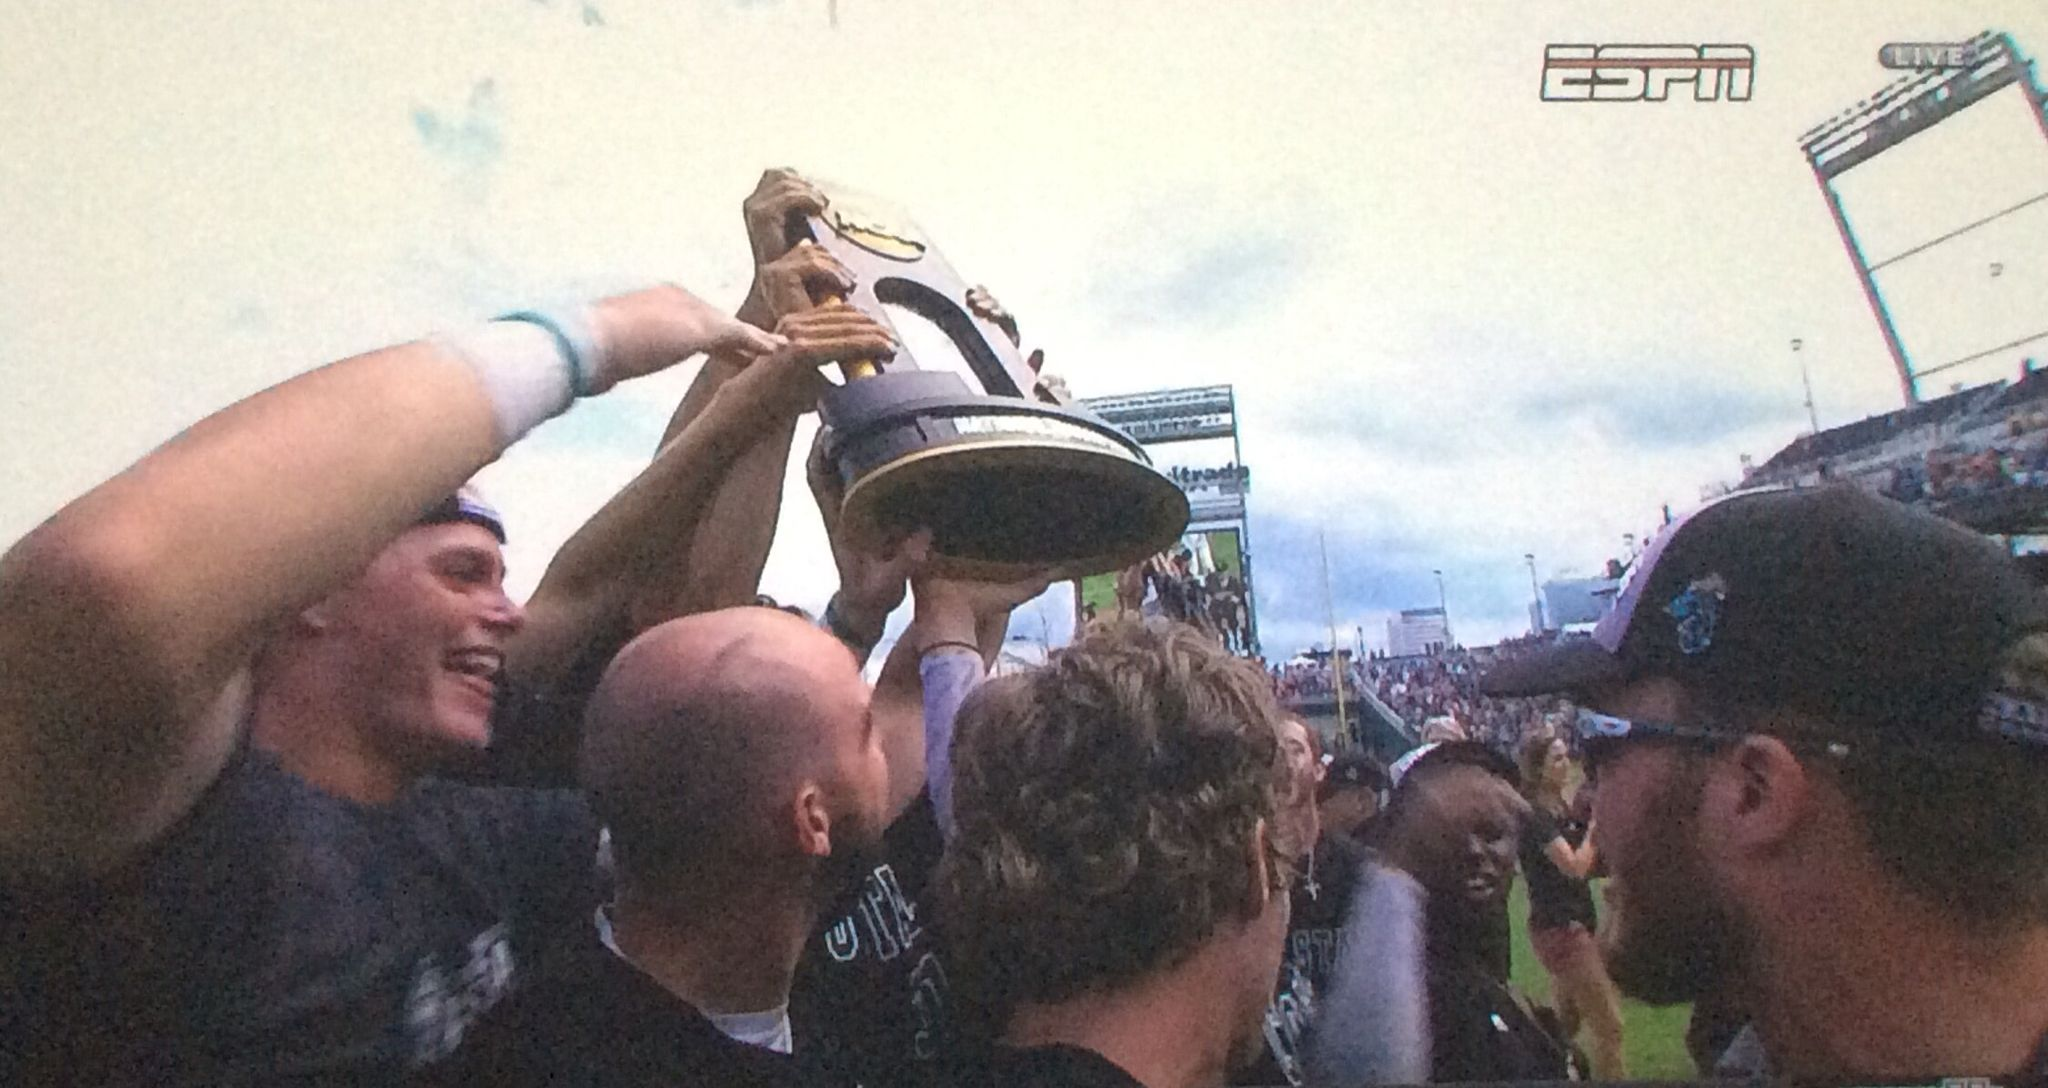 That's the trophy...